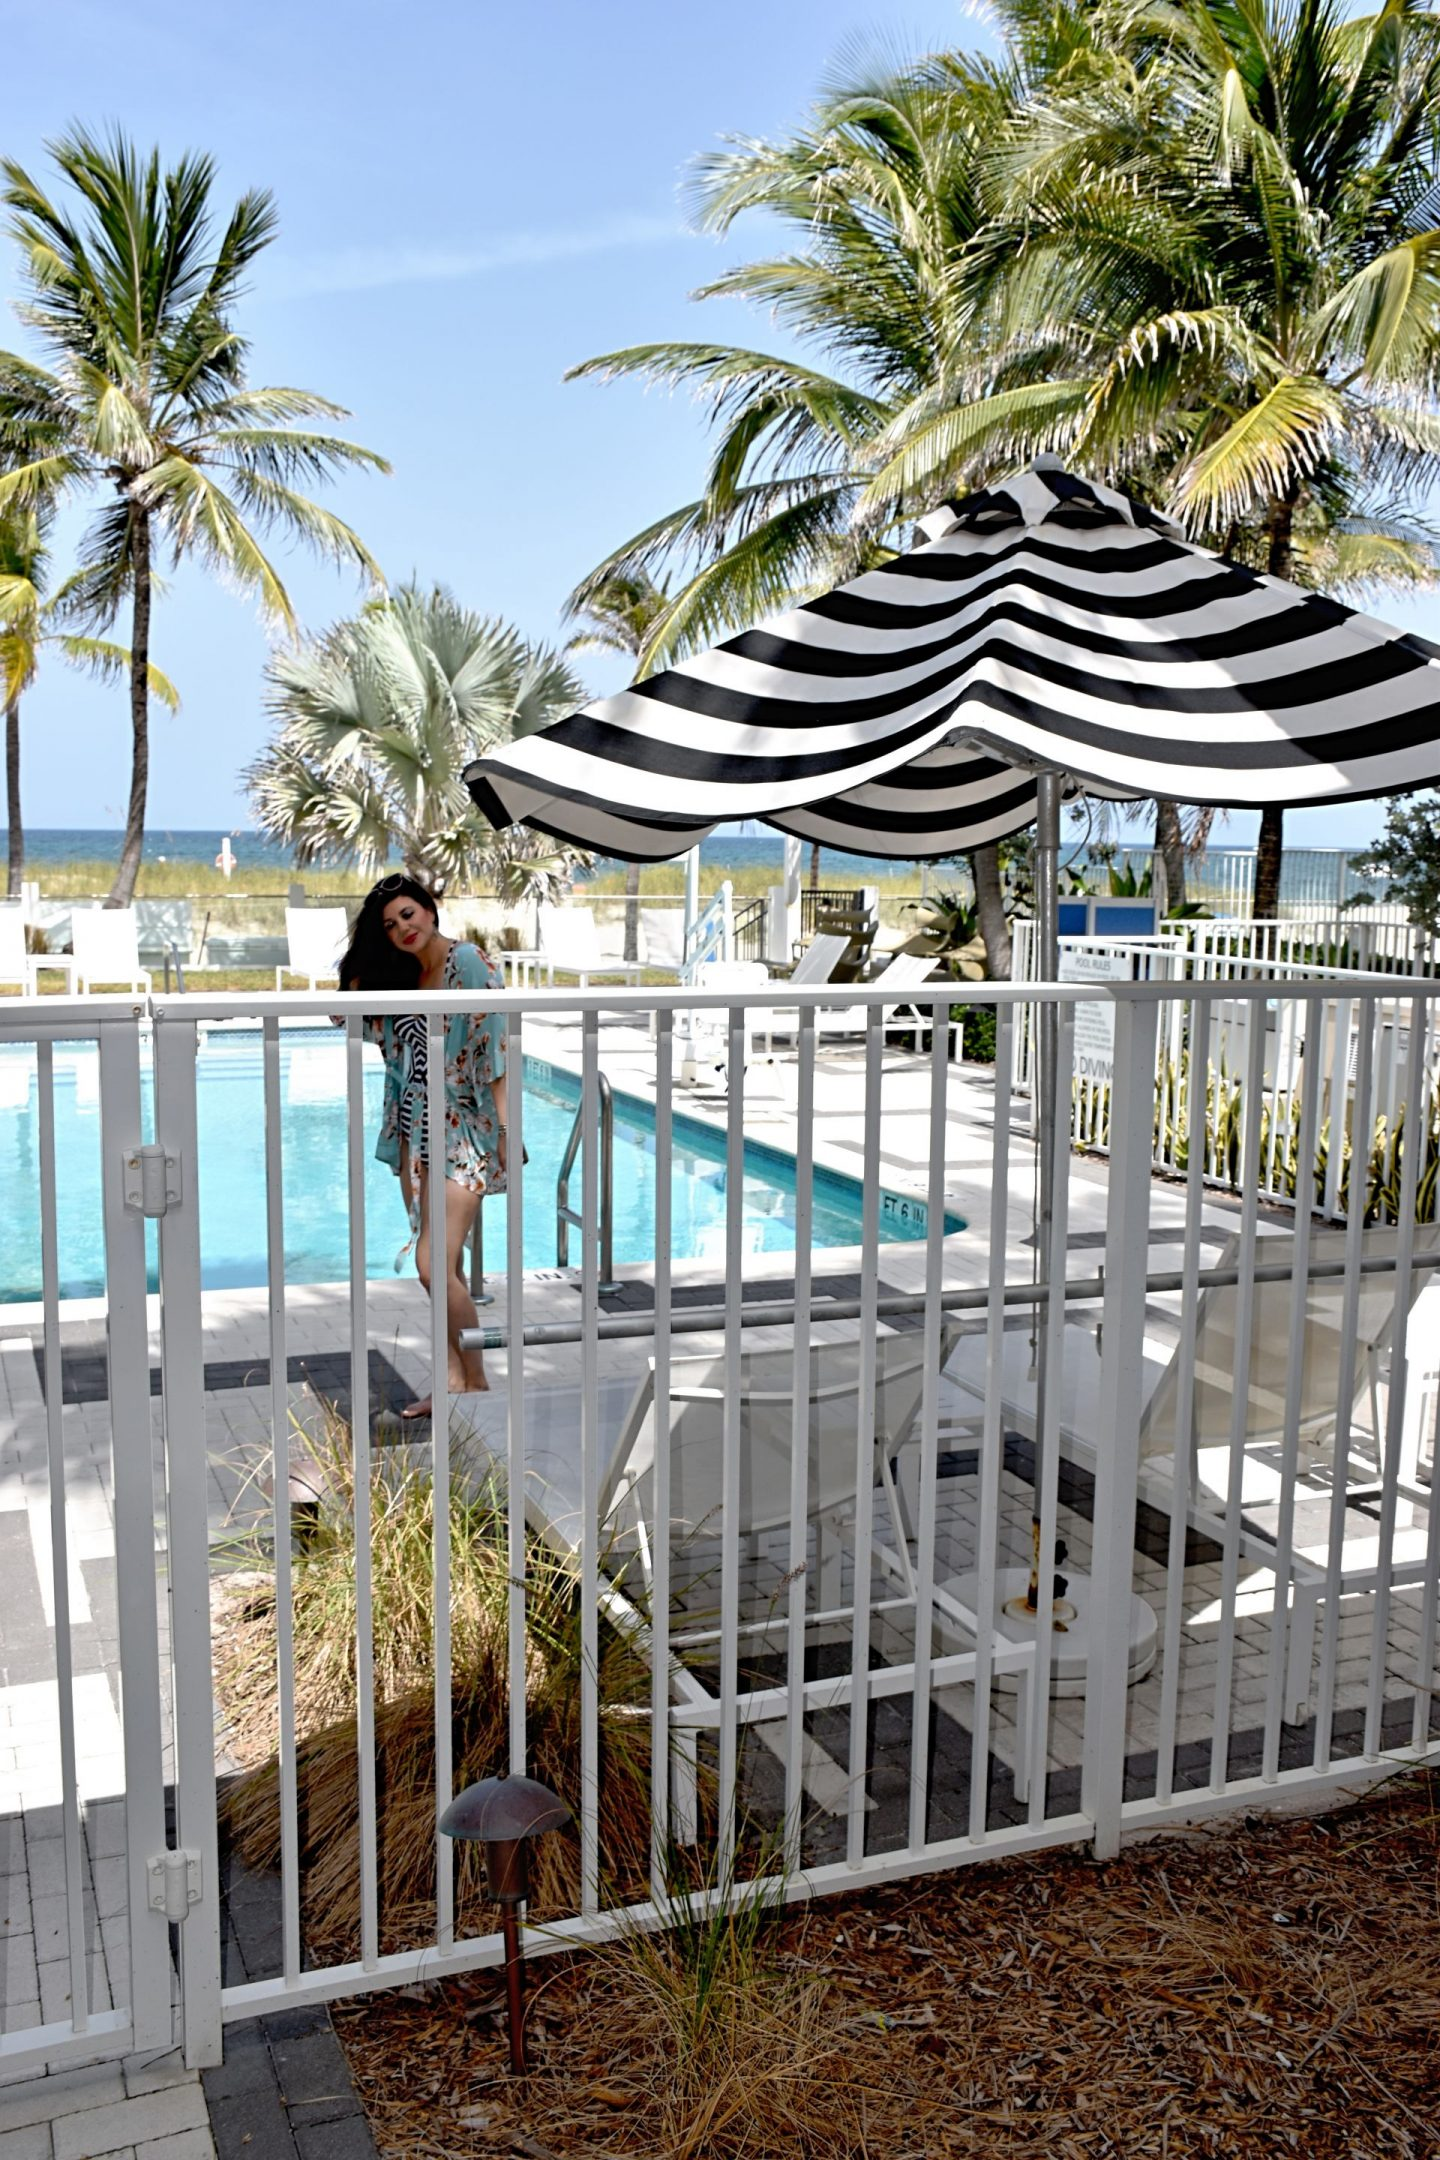 Lauderdale-by-the-Sea Florida Plunge Beach Resort Review